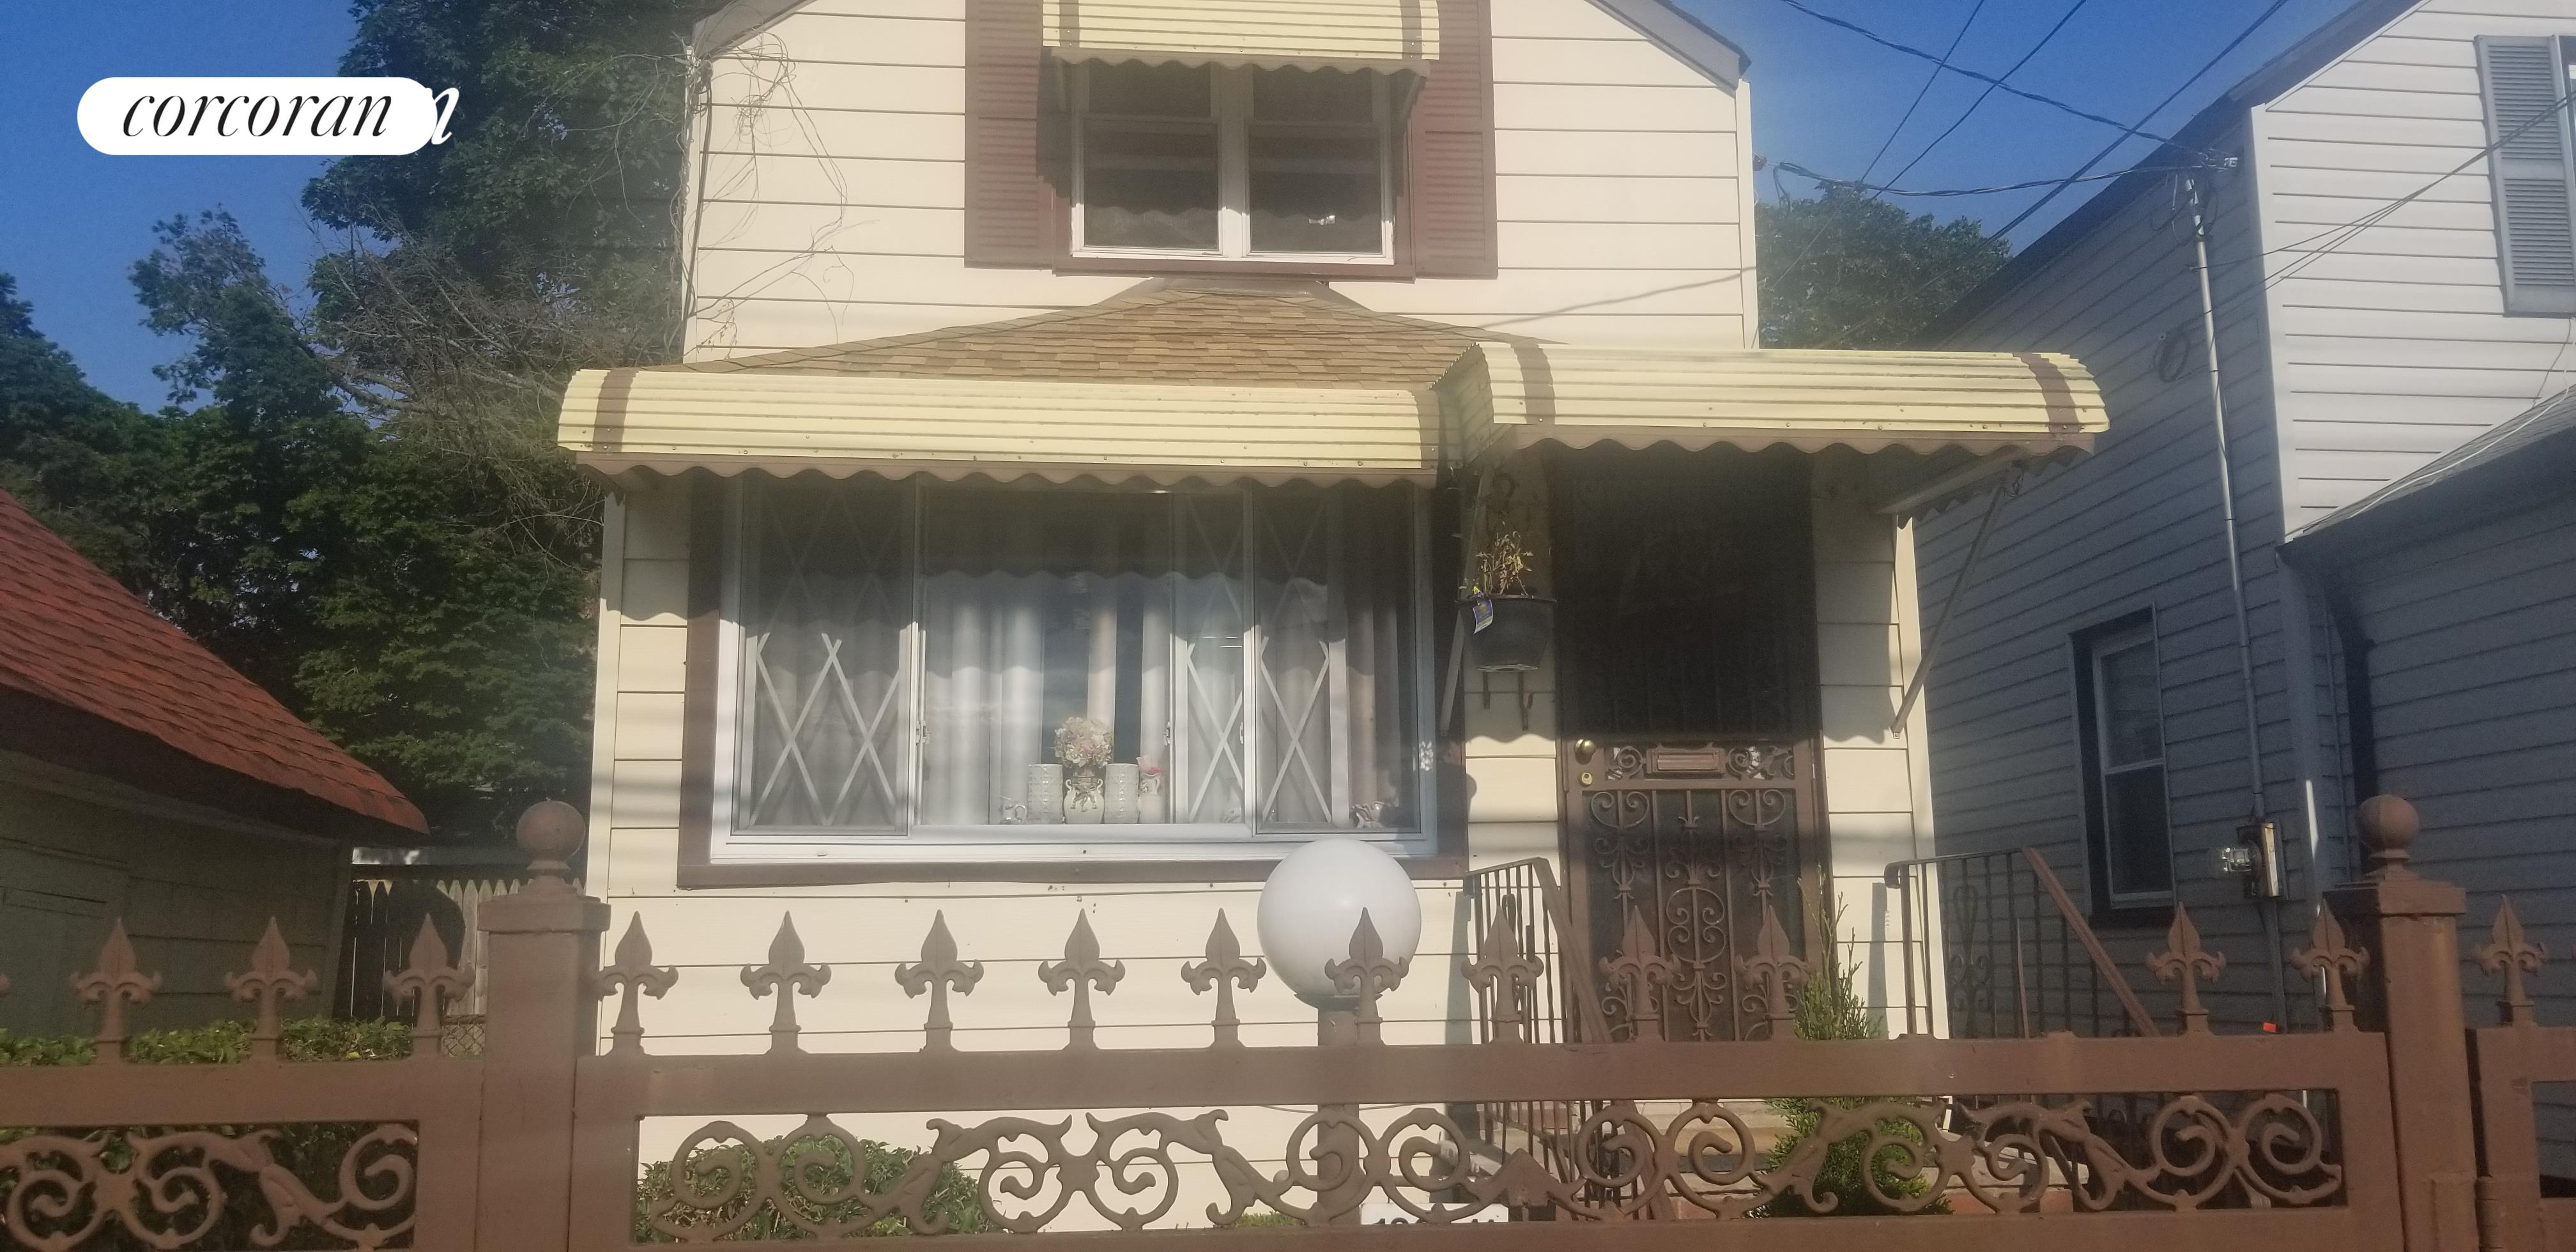 130-11 147th Street South Jamaica Queens NY 11436